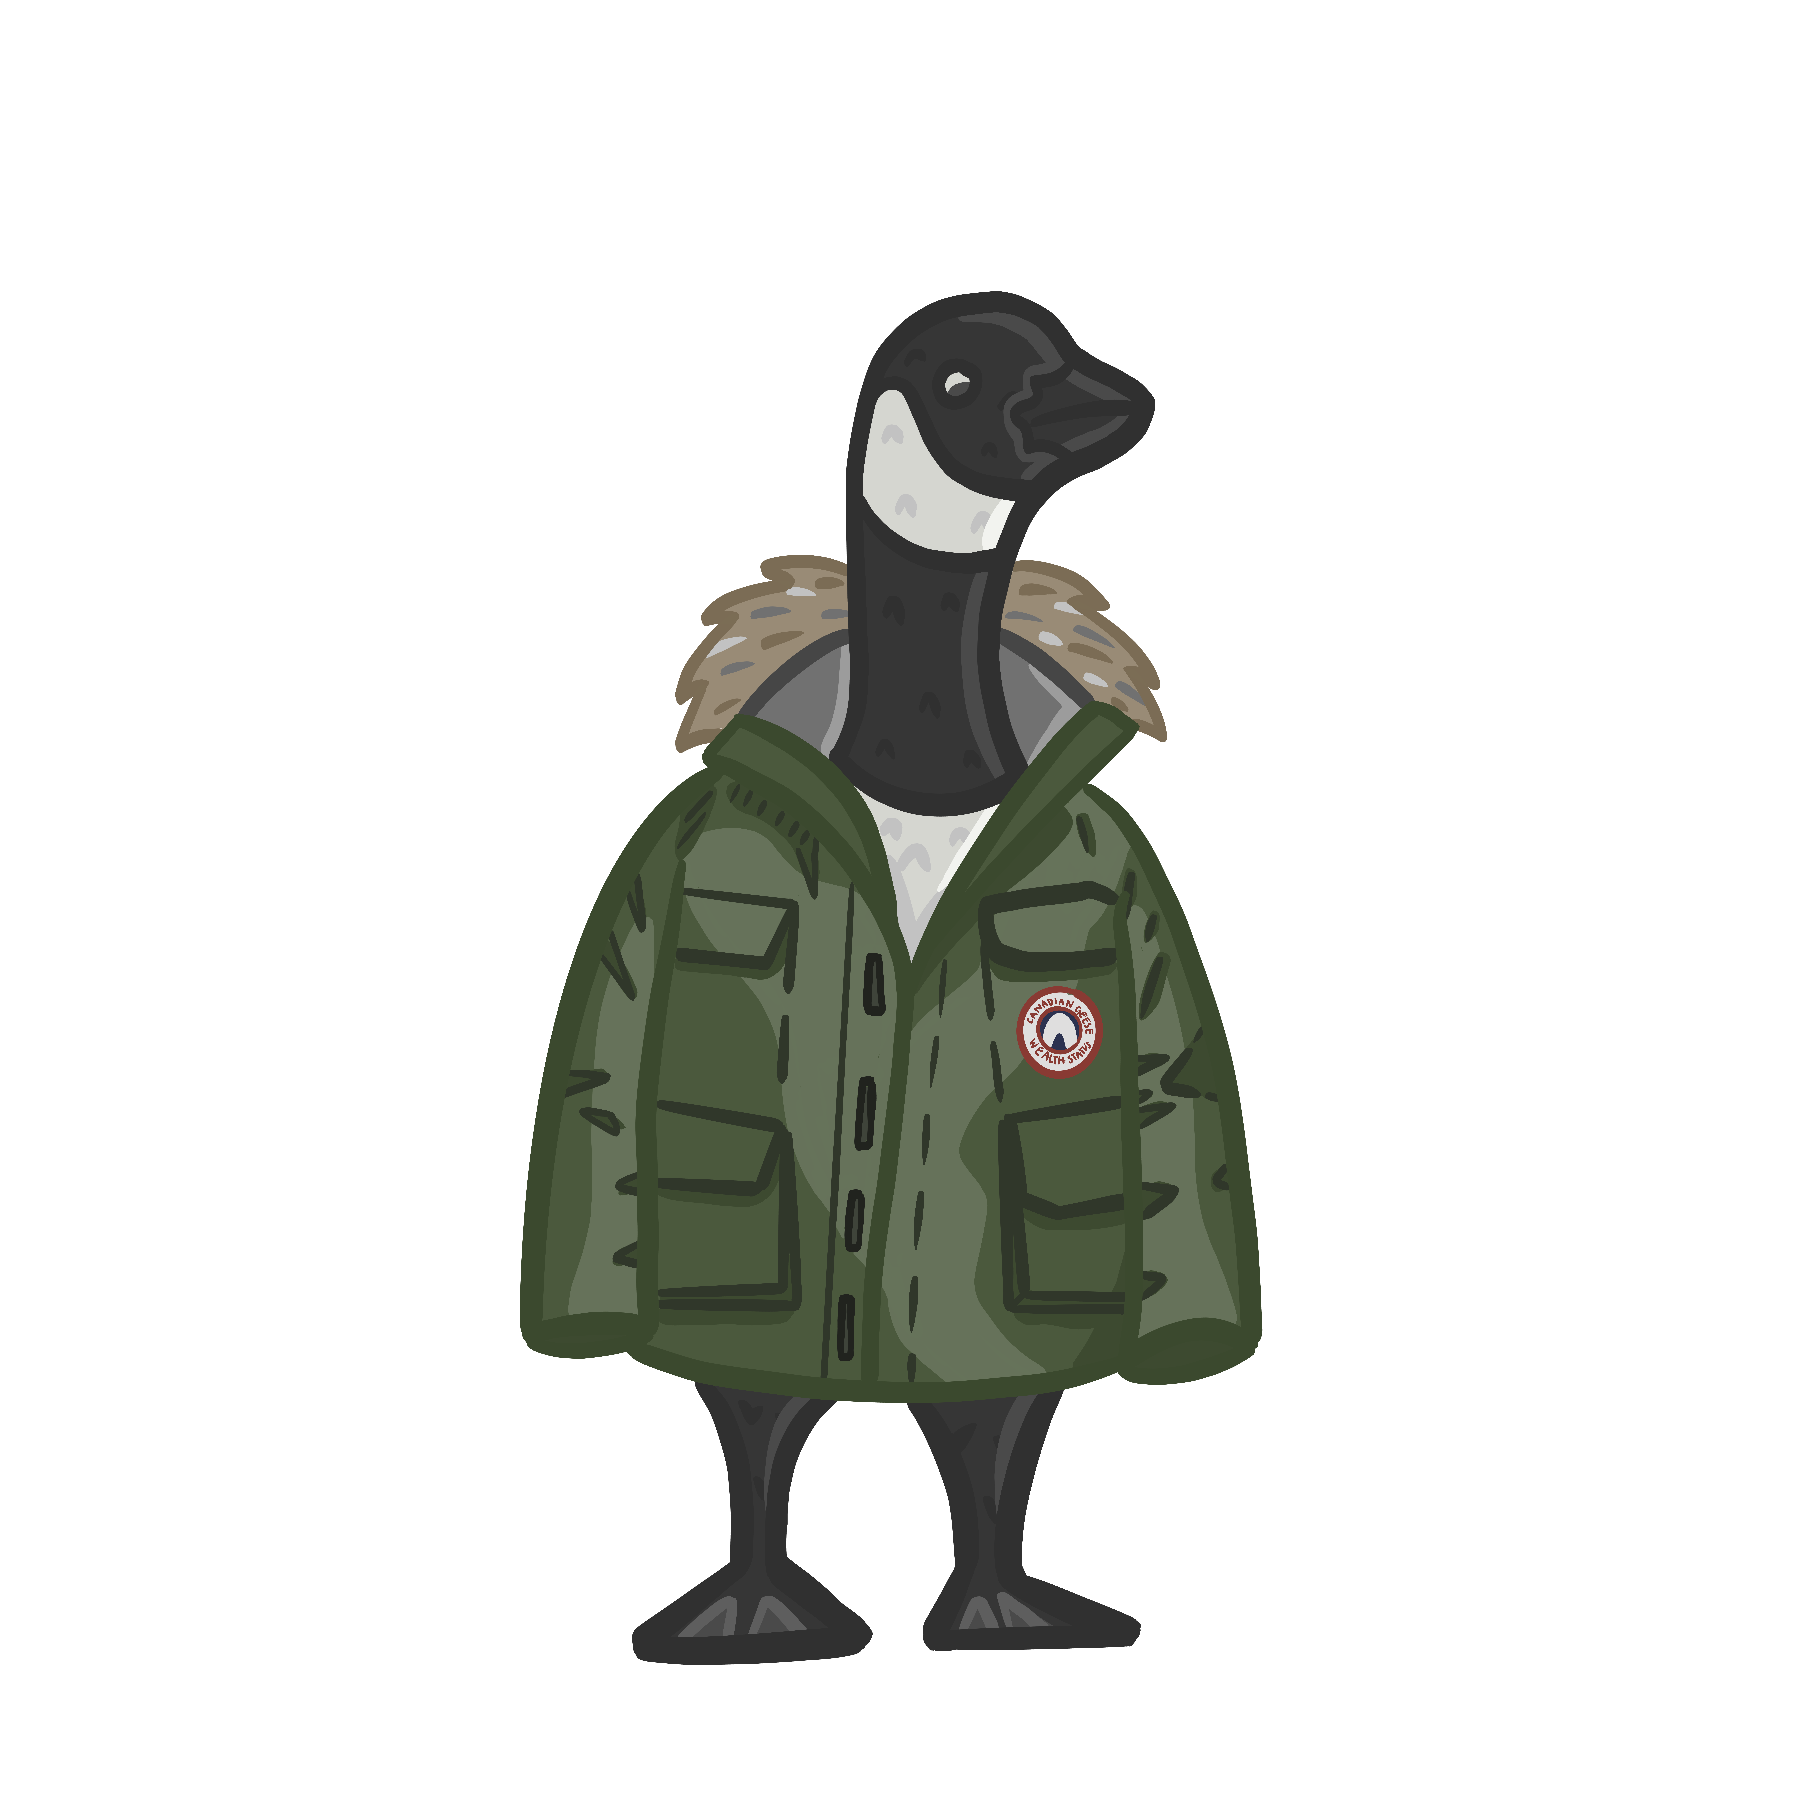 Image of a cartoon Canadian Goose wearing a green Canada Goose jacket